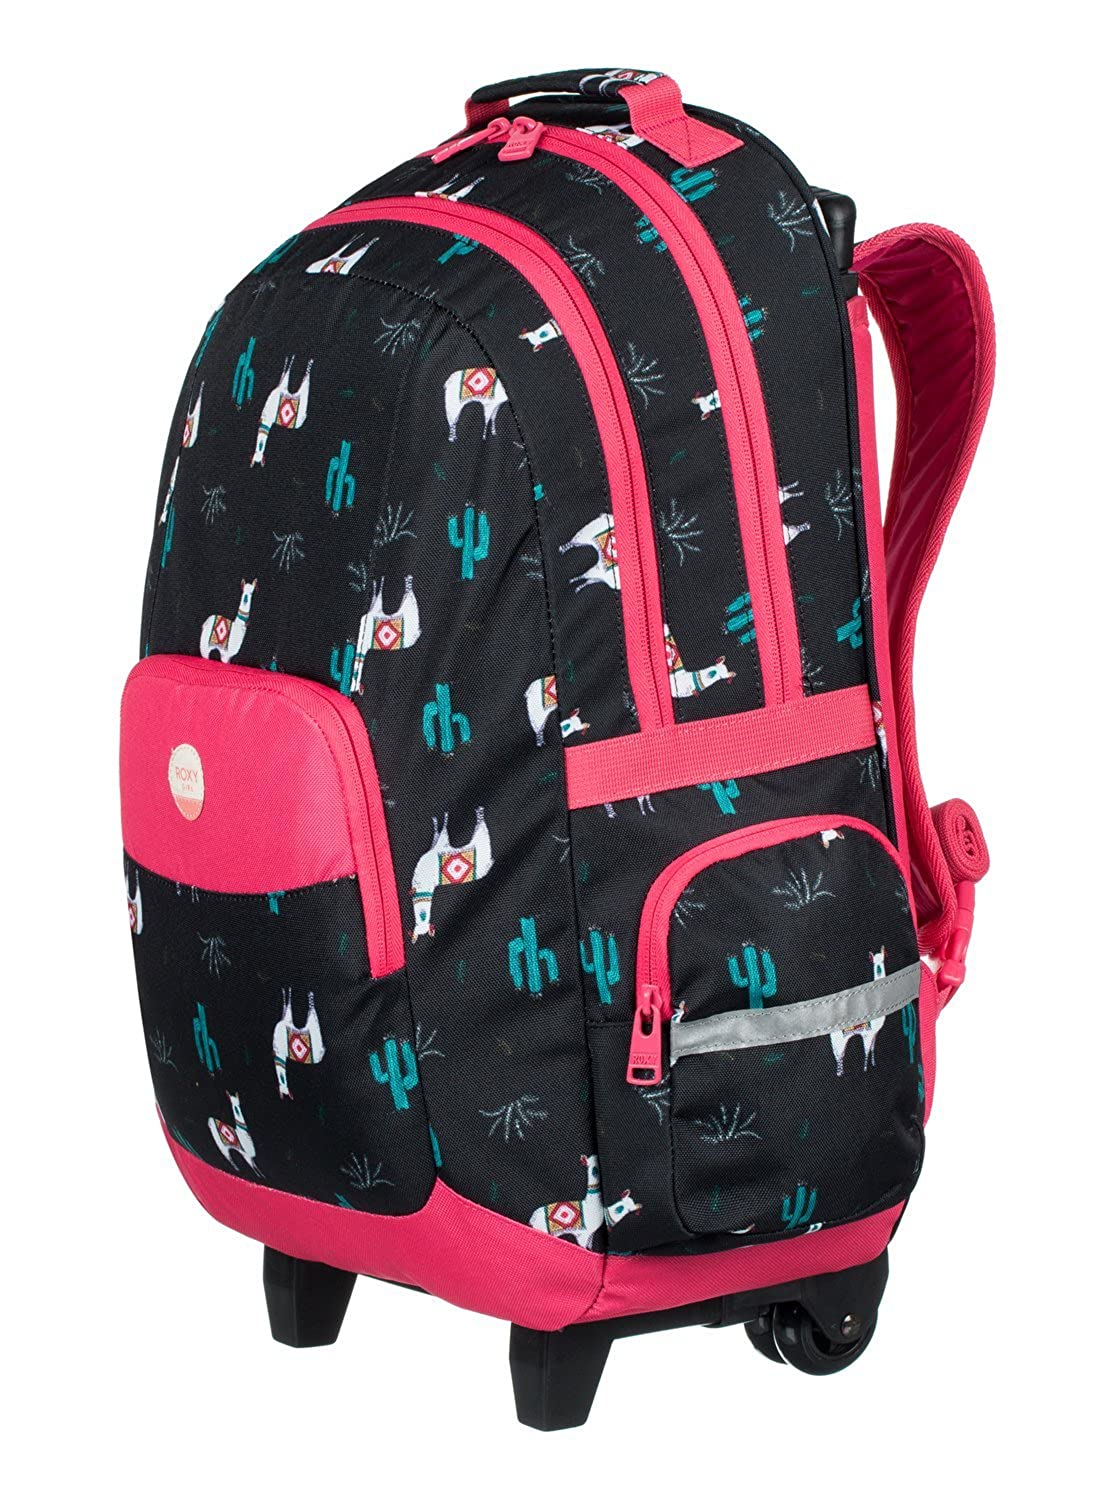 Roxy - Free Spirit - Mochila - Anthracite Peru Travel: Roxy: Amazon.es: Deportes y aire libre